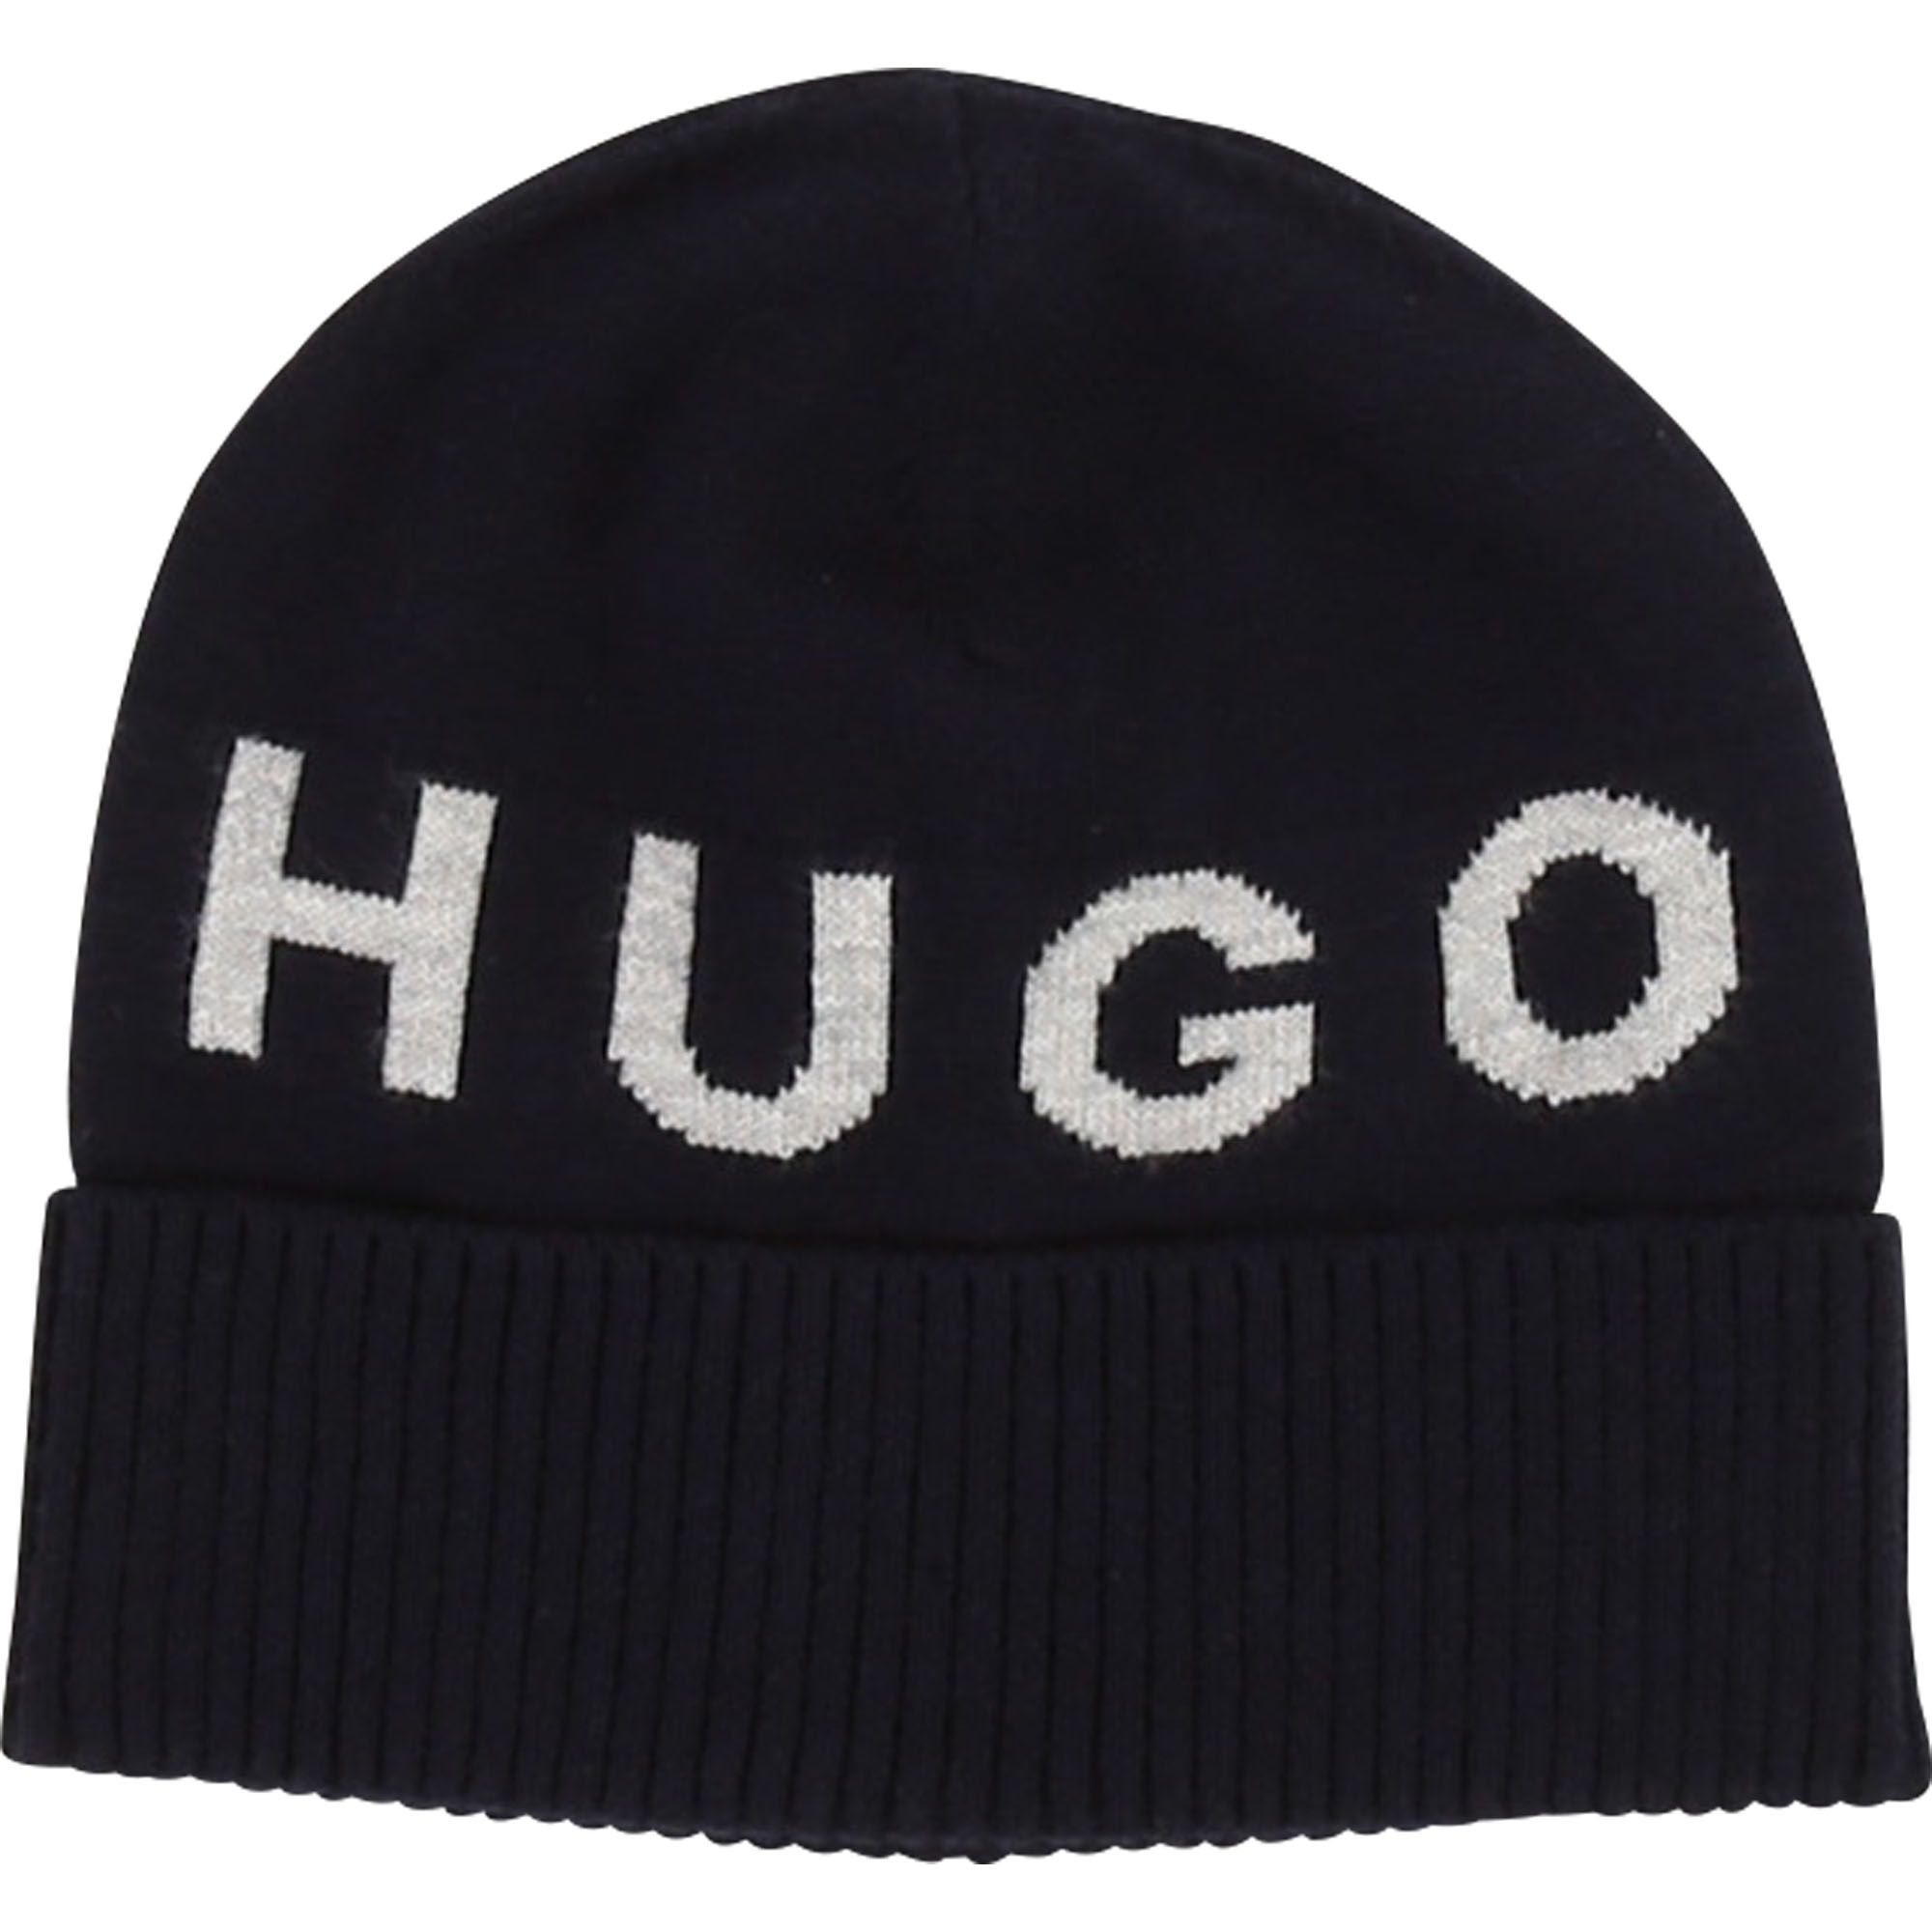 good quality 50% off save up to 80% Tuque & Foulard, Hugo Boss, 44, Garçon, Marine, J01100-J01101, AH19